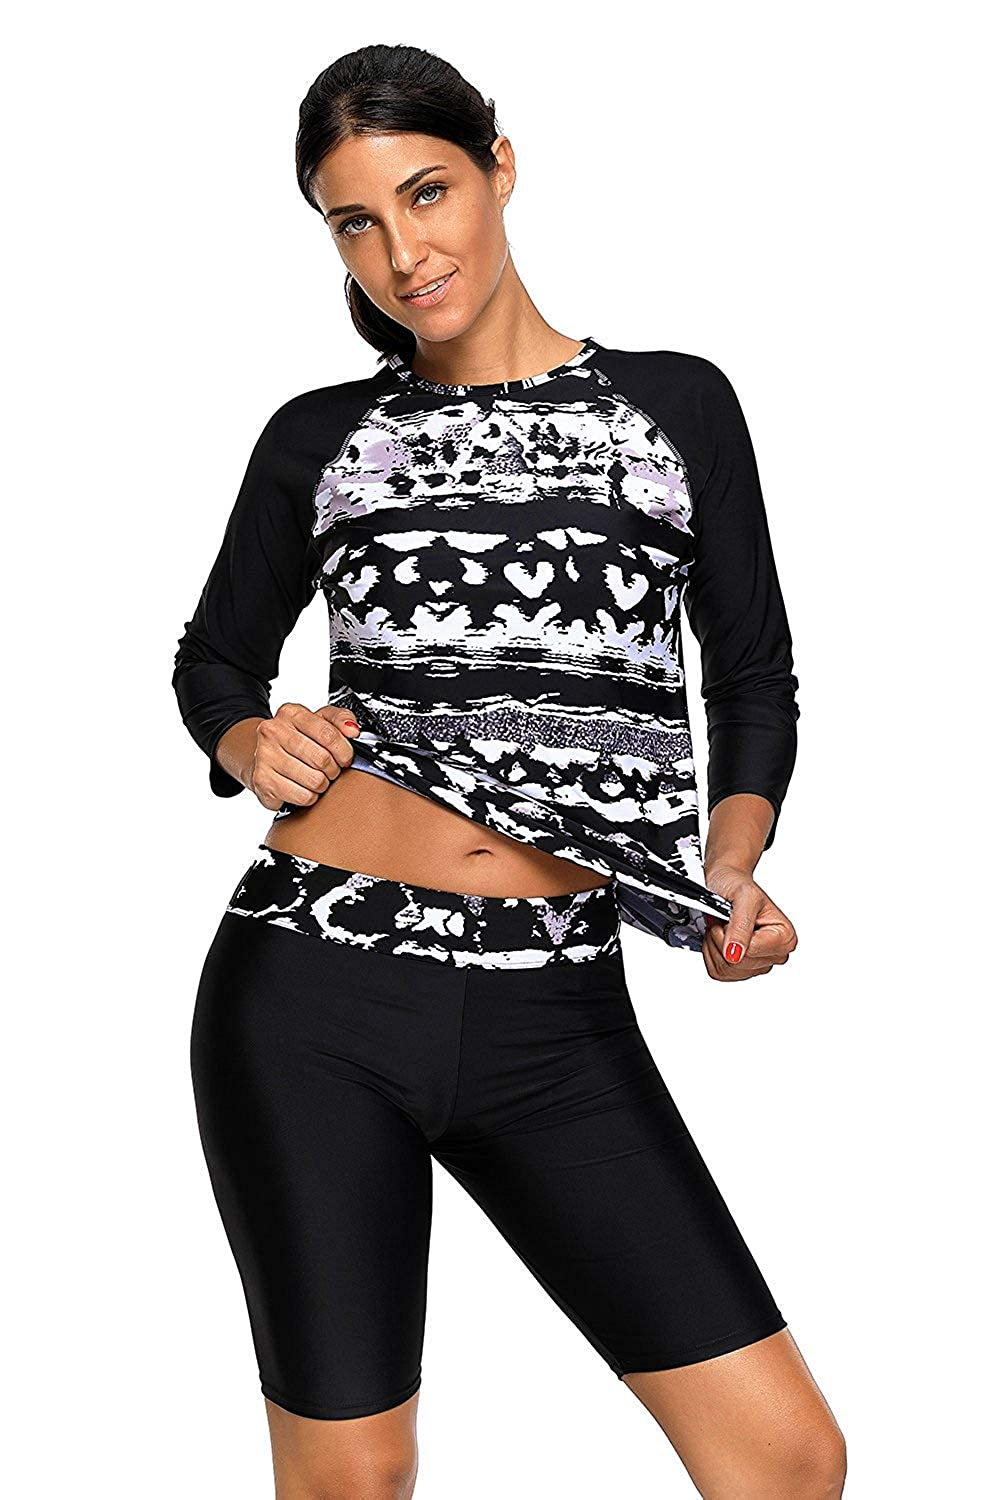 Womens Printed Long Sleeve Rash Guard Top and Capri Pants Two Piece Swimsuit Set